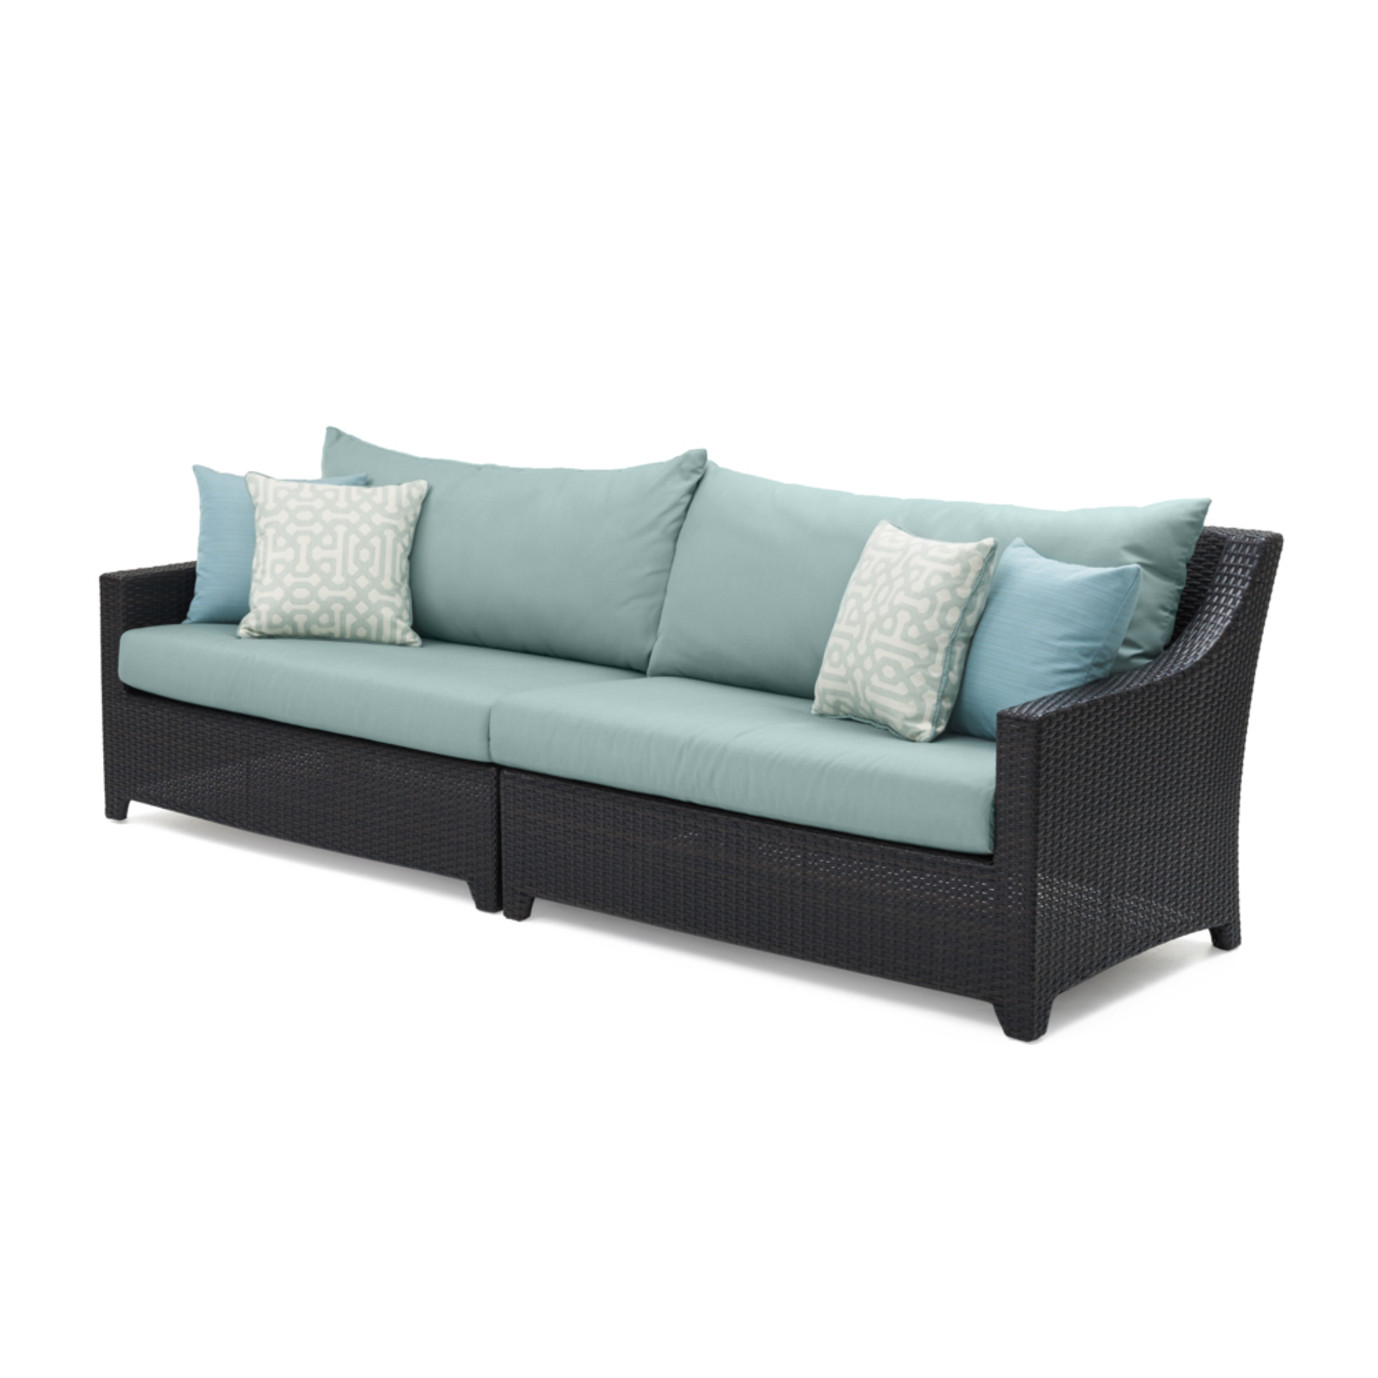 Deco™ Sofa - Spa Blue